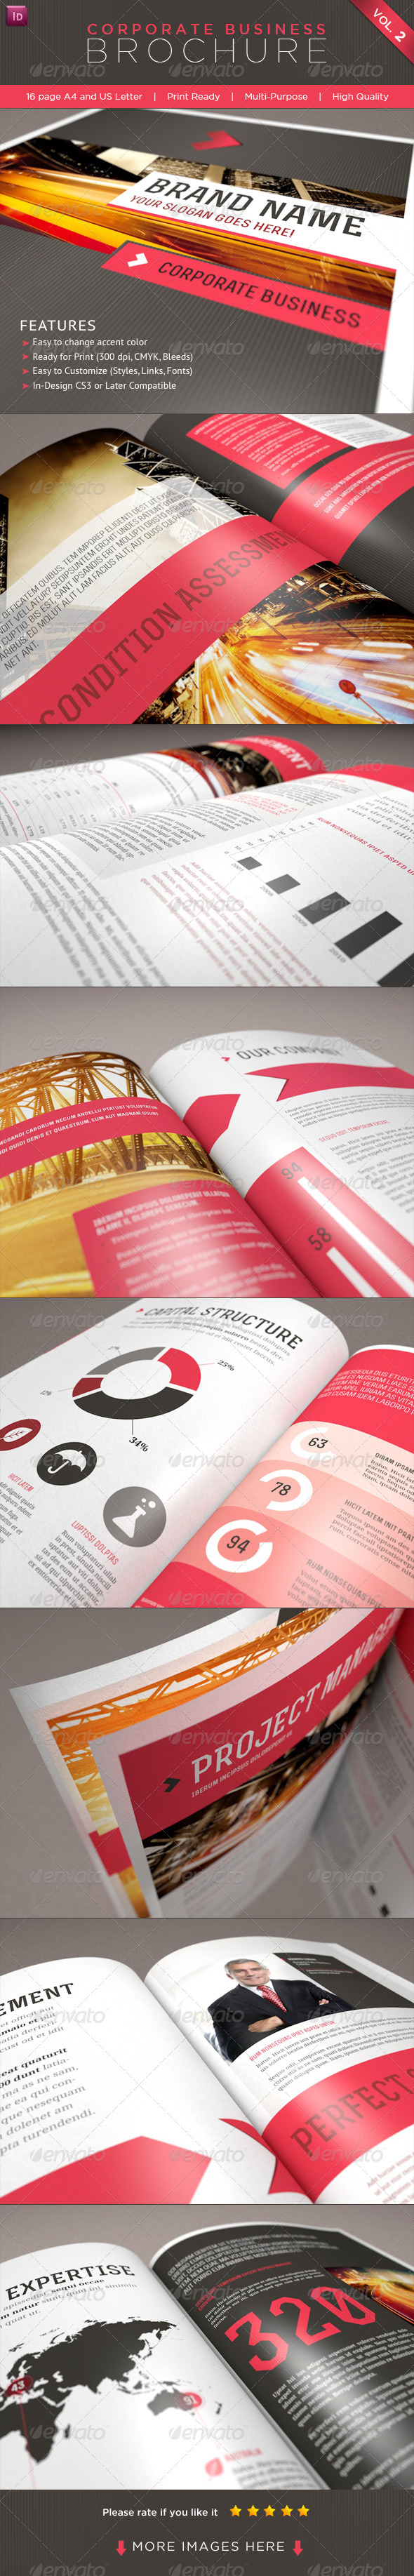 Professional Corporate Business Brochure Vol. 2 - Corporate Brochures